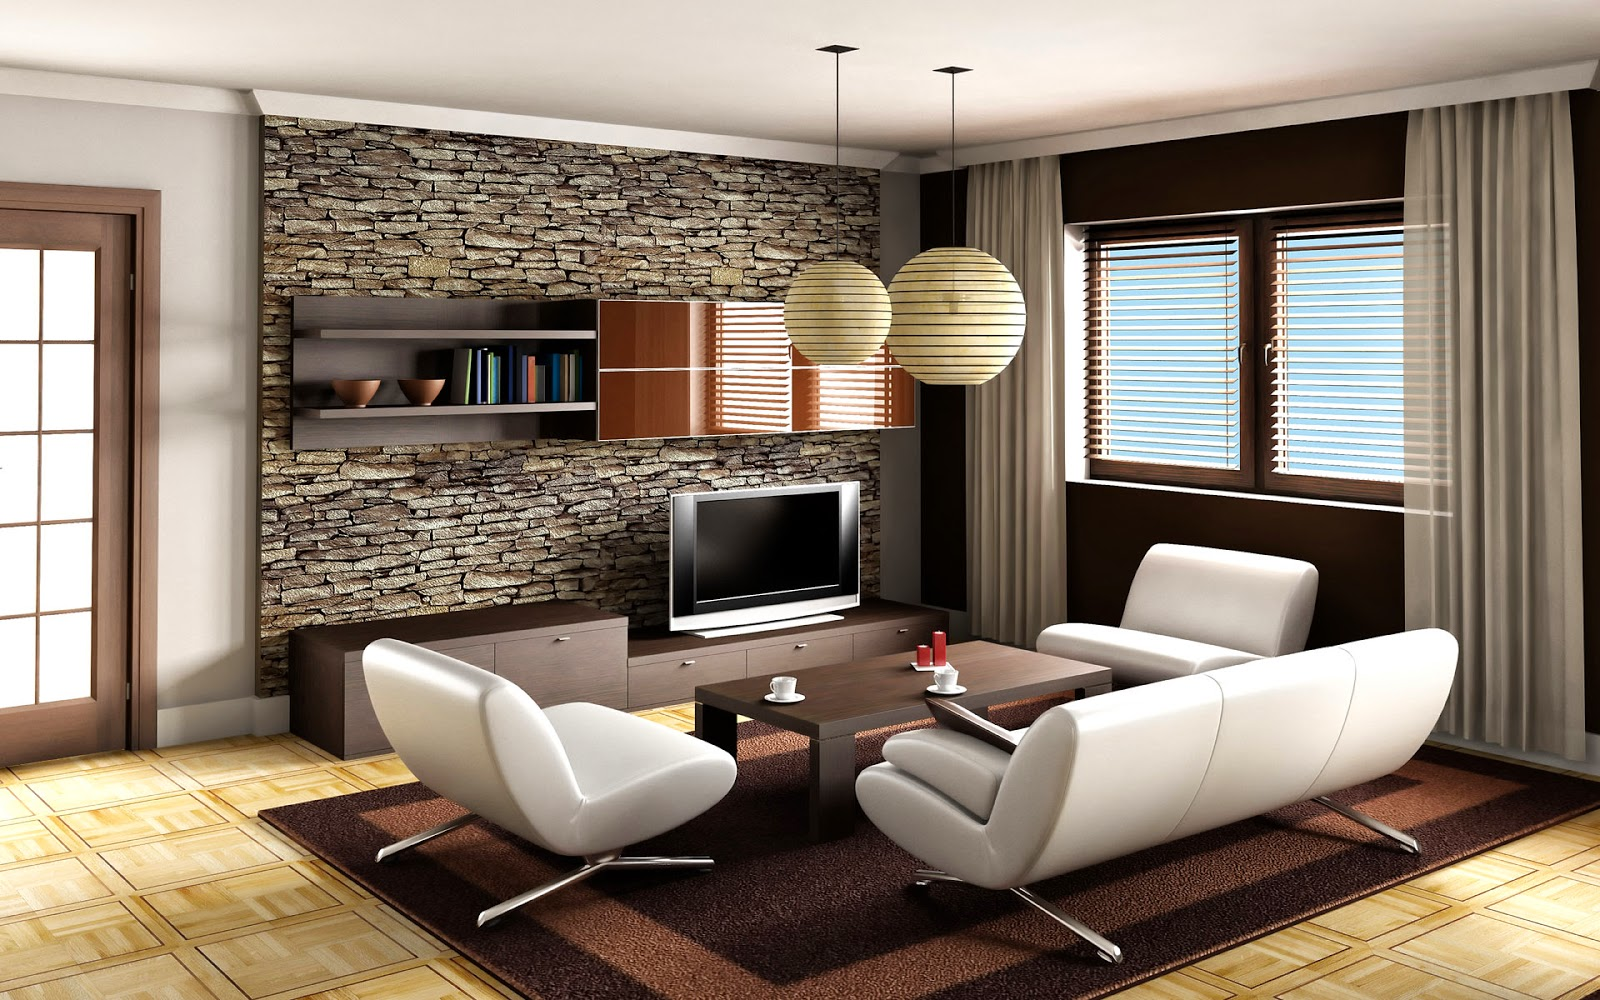 brown sofa living room design ideas memory foam cushions 2 decor leather home